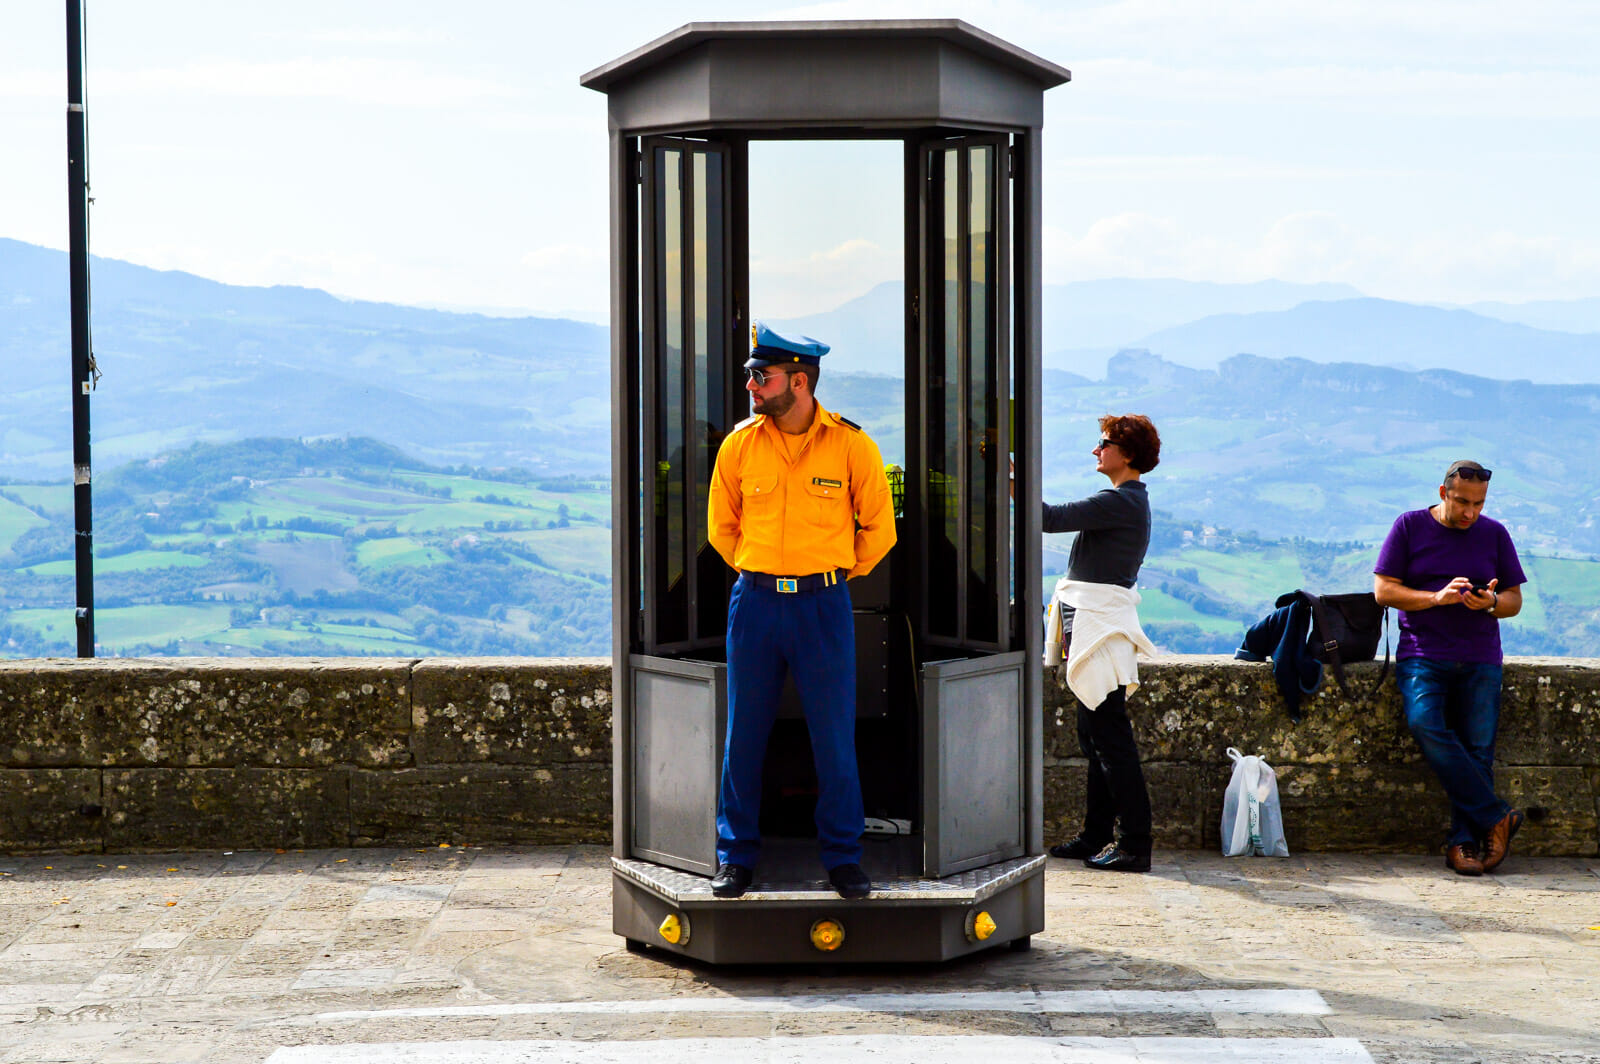 The Guards at San Marino